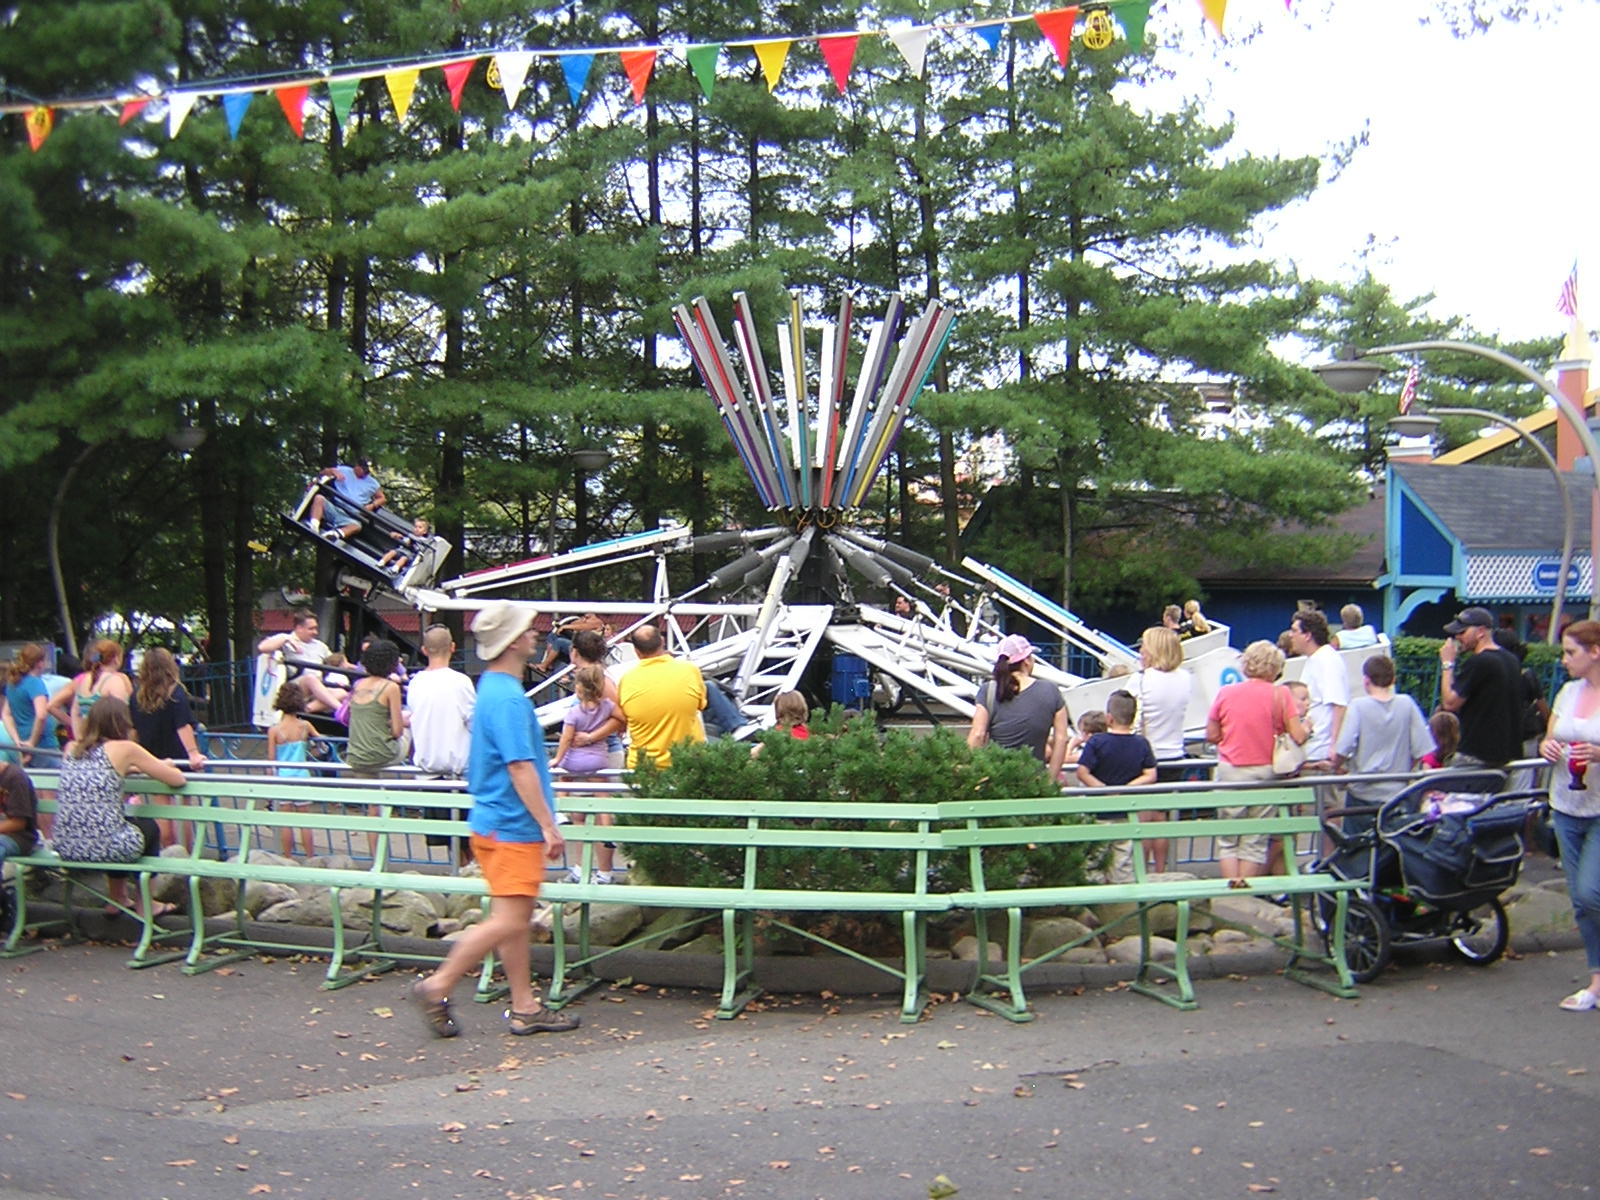 1000 images about kennywood park pa on pinterest pittsburgh pennsylvania and google images. Black Bedroom Furniture Sets. Home Design Ideas